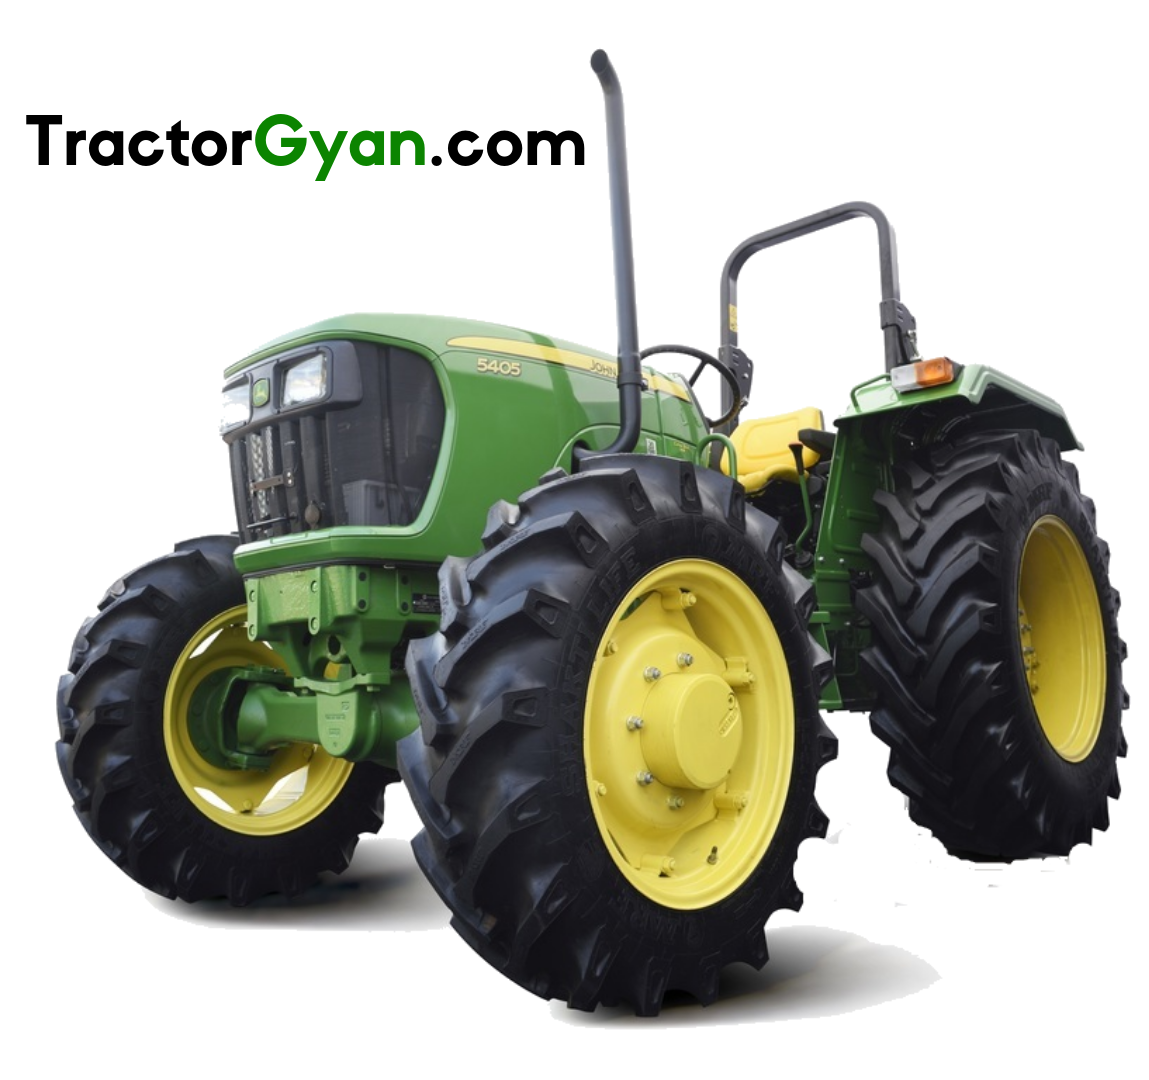 John deere 5405 GEARPRO 4WD Tractor On-road price in India. John deere 5405 GEARPRO 4WD Tractor Features, specifications, and full video review